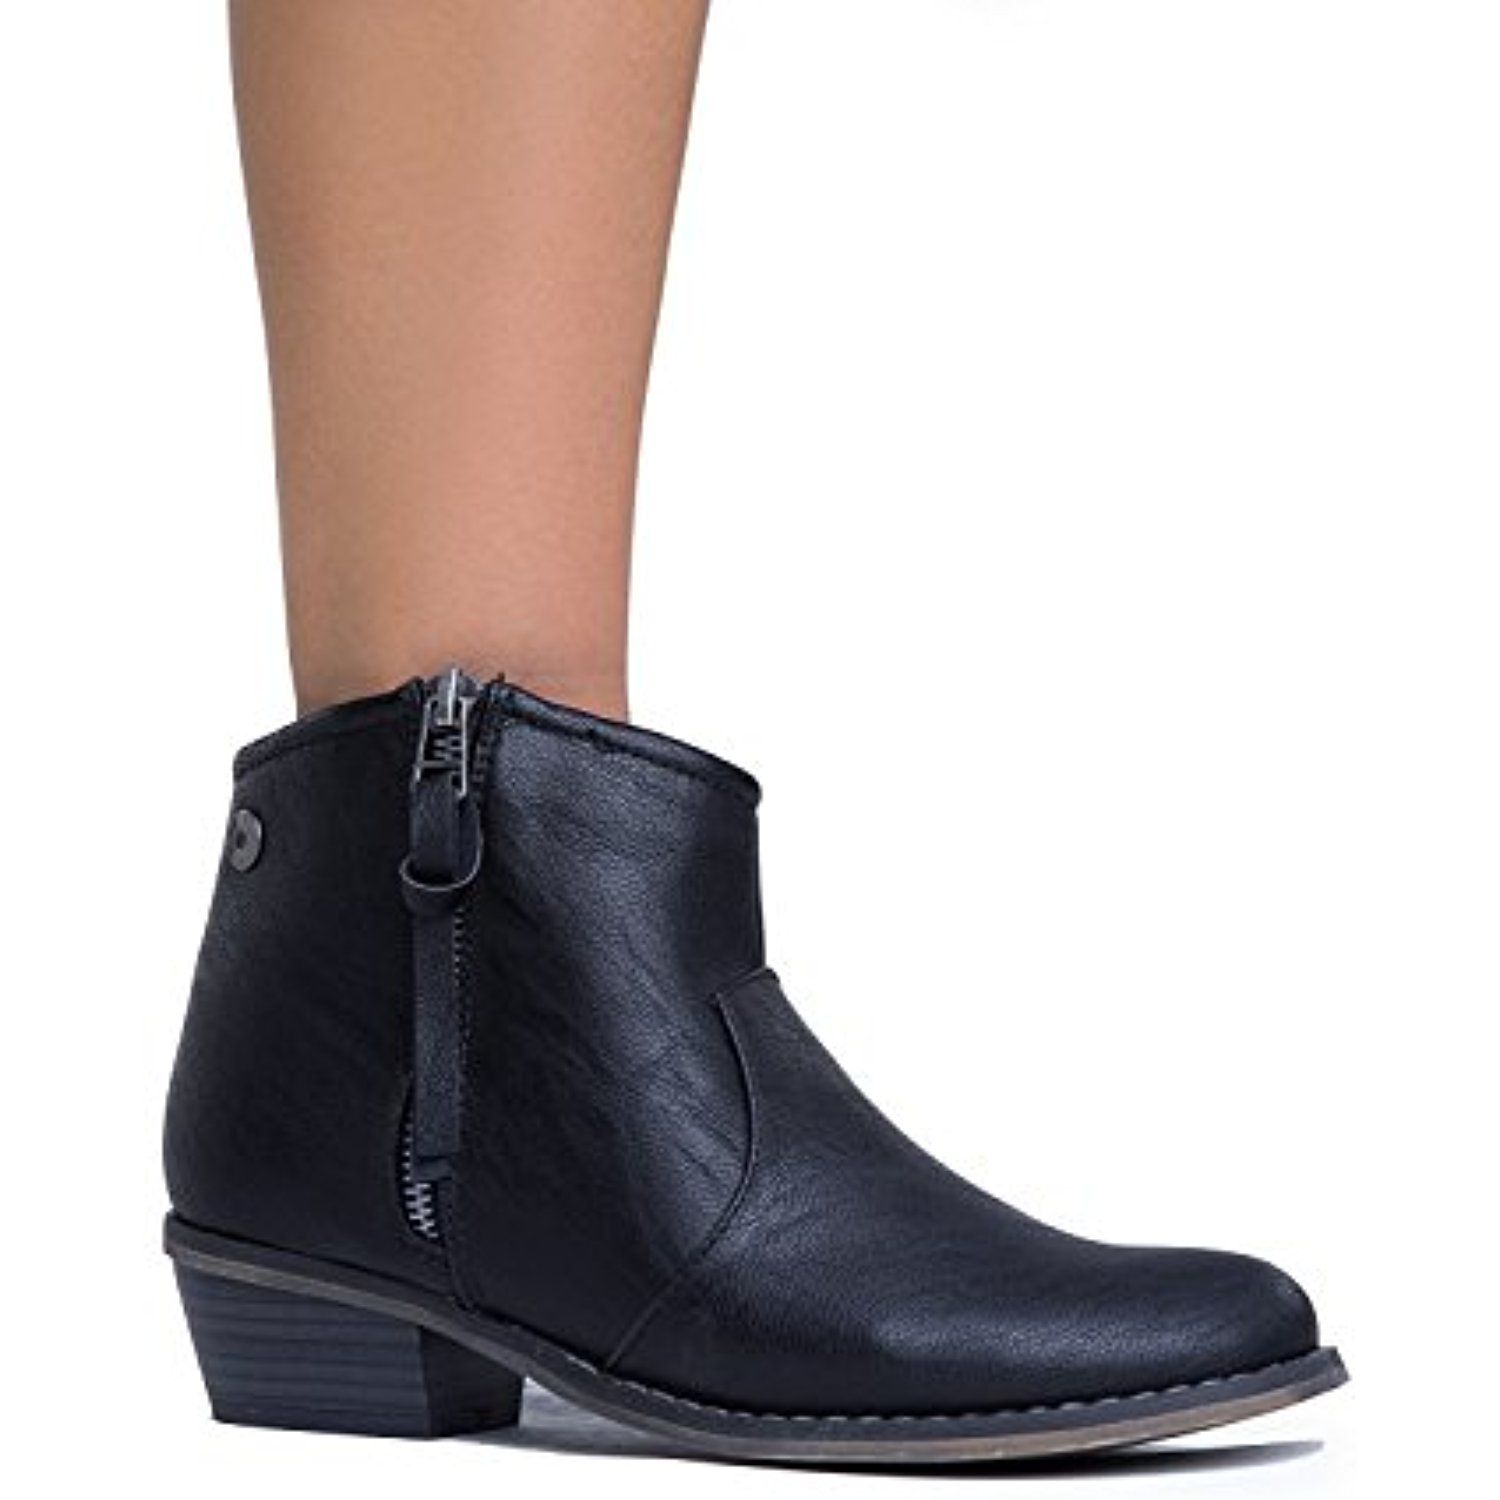 Women's Dorado-11 Western Ankle Boot Black-11 8